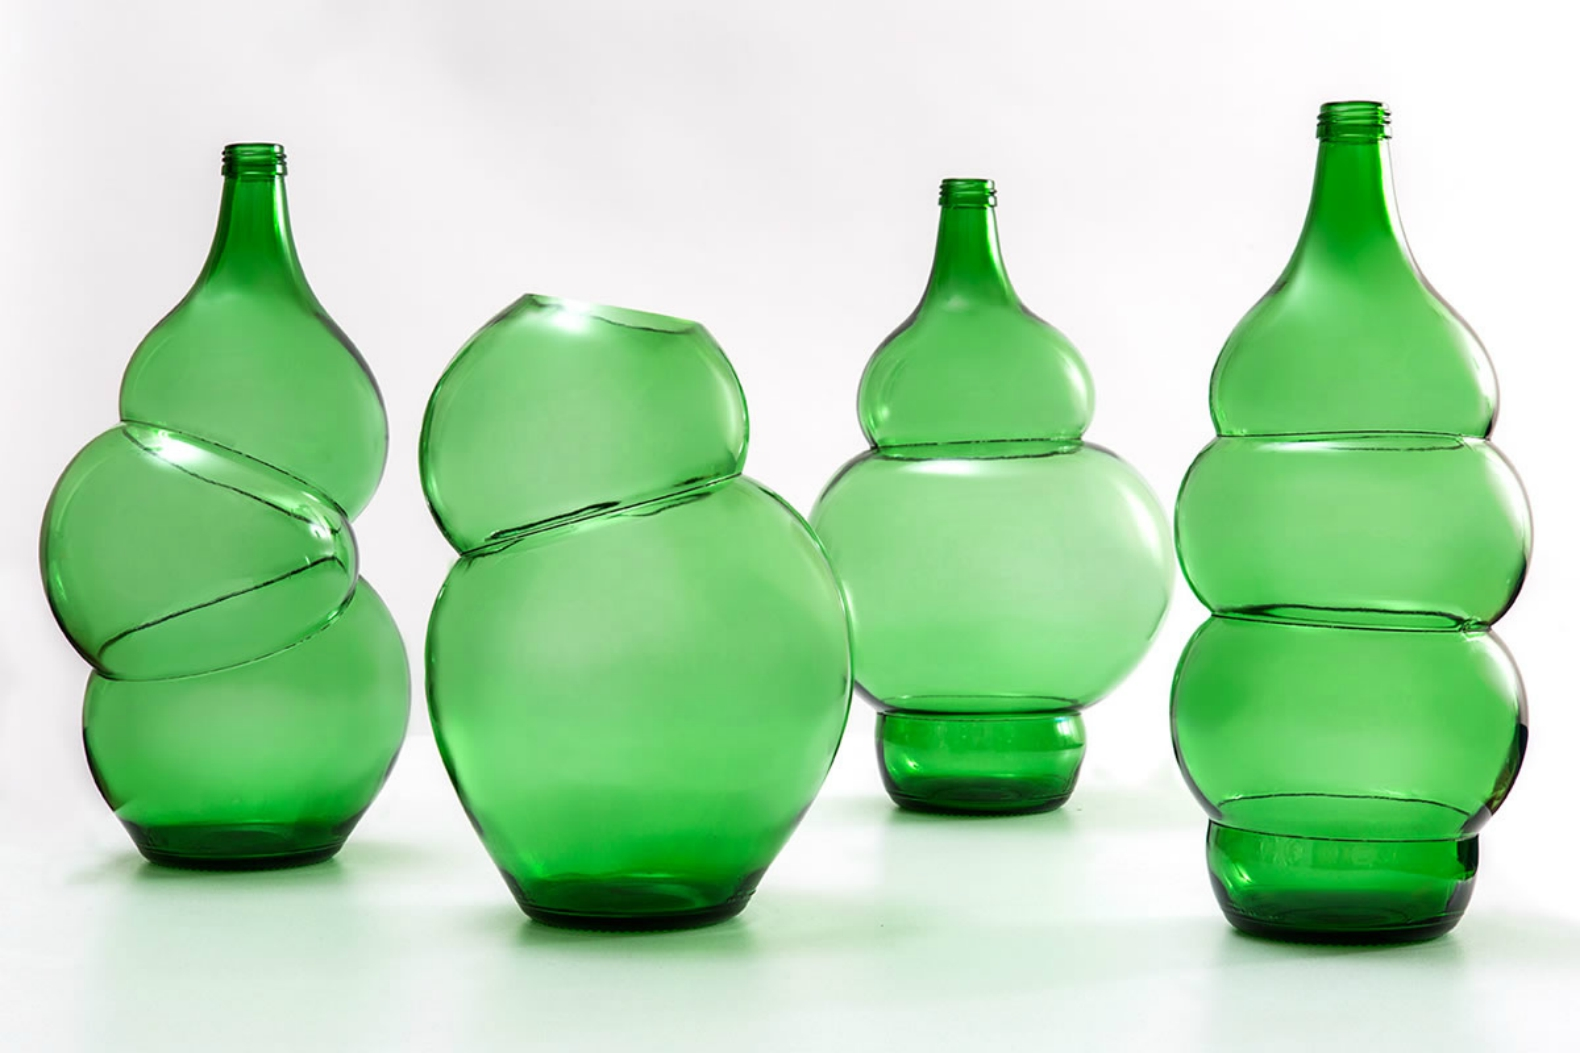 klaas kuiken turns common green bottles into incredible vases with this clever trick inhabitat. Black Bedroom Furniture Sets. Home Design Ideas